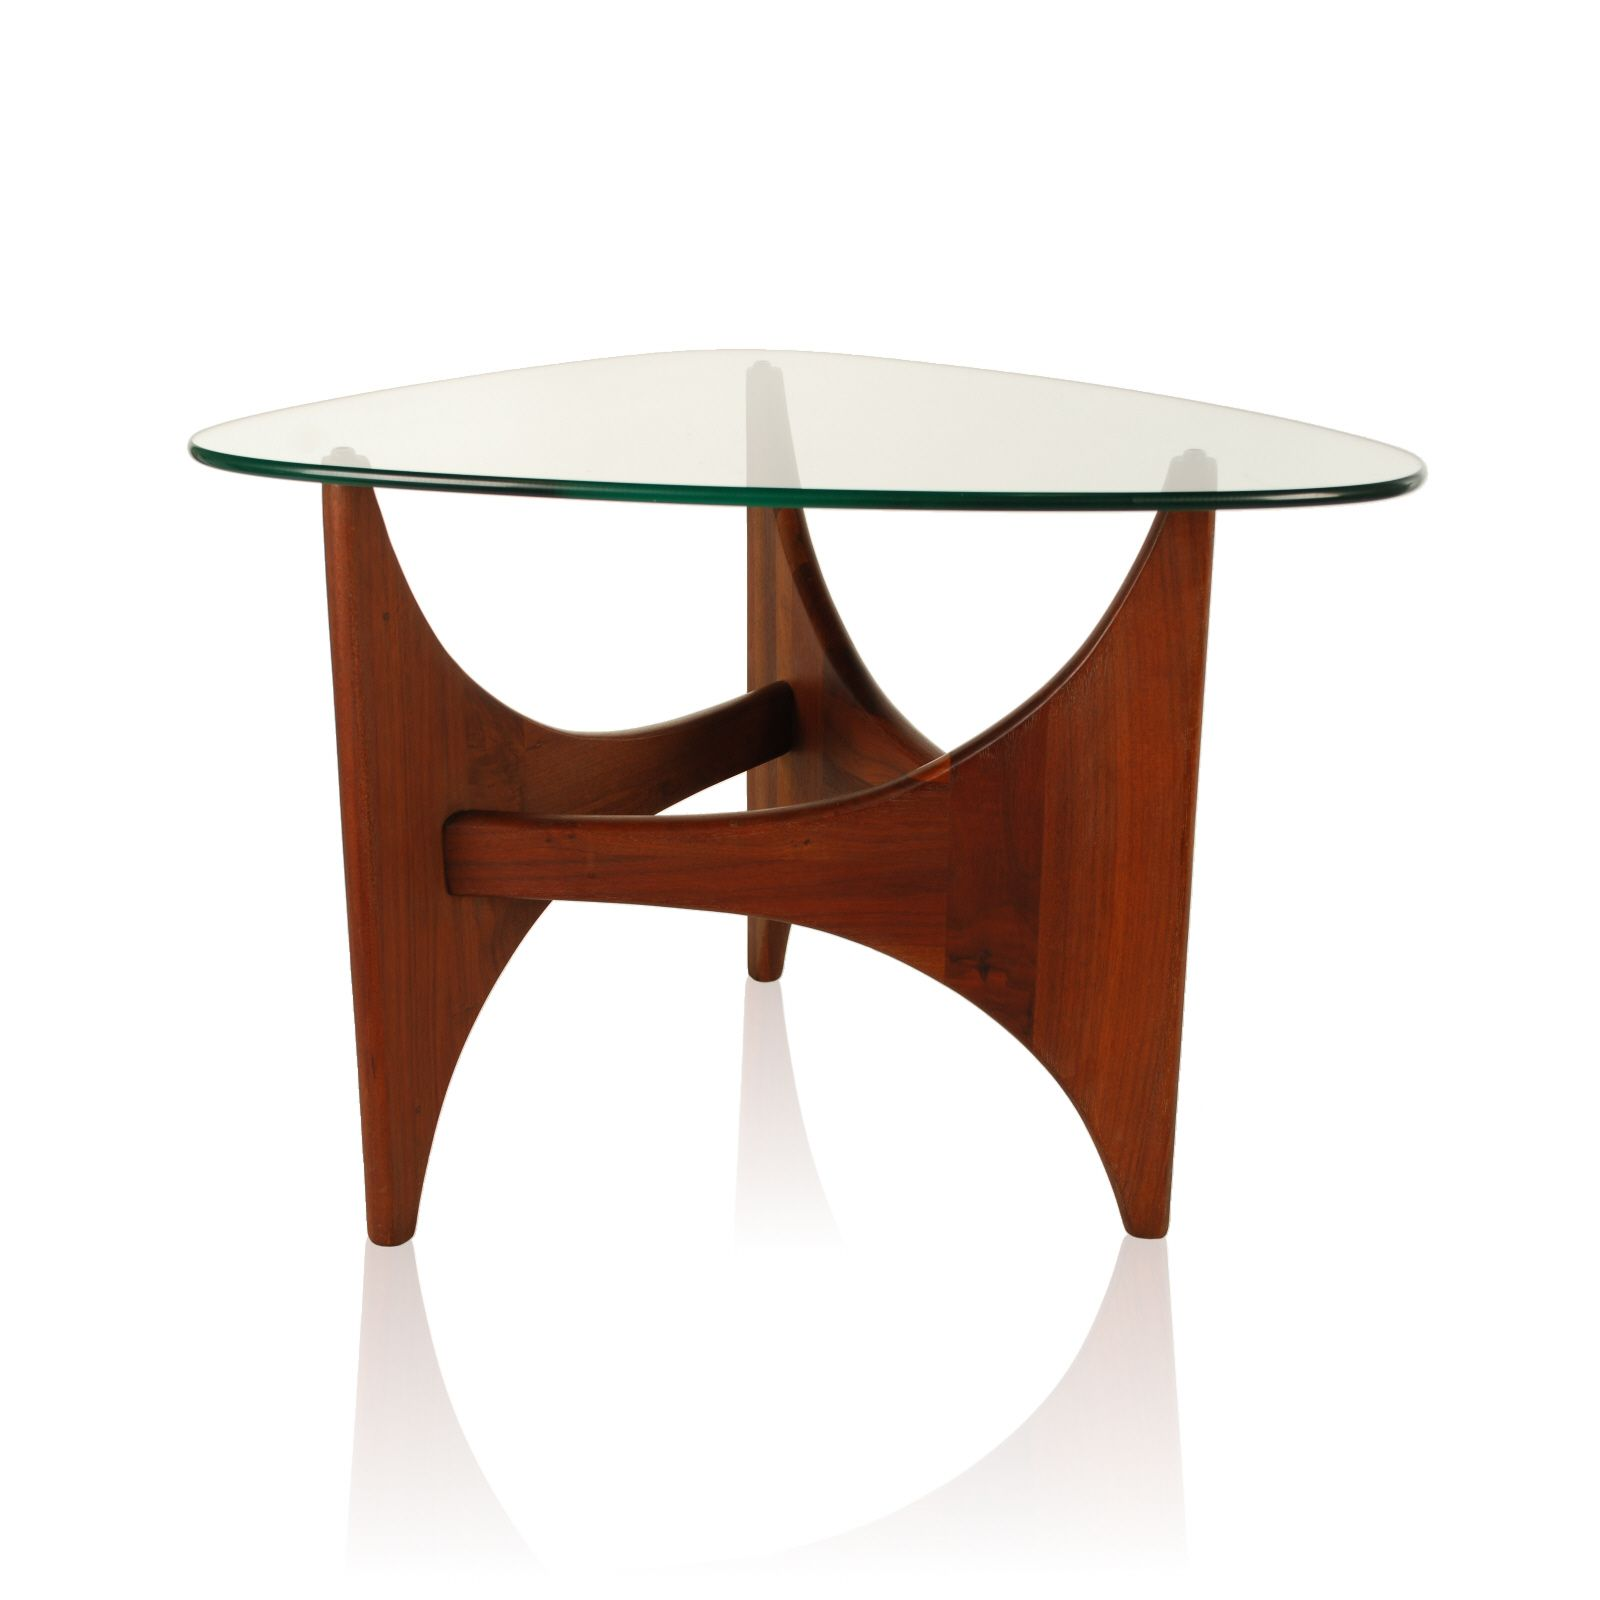 Mid century modern side table by renowned furniture ...